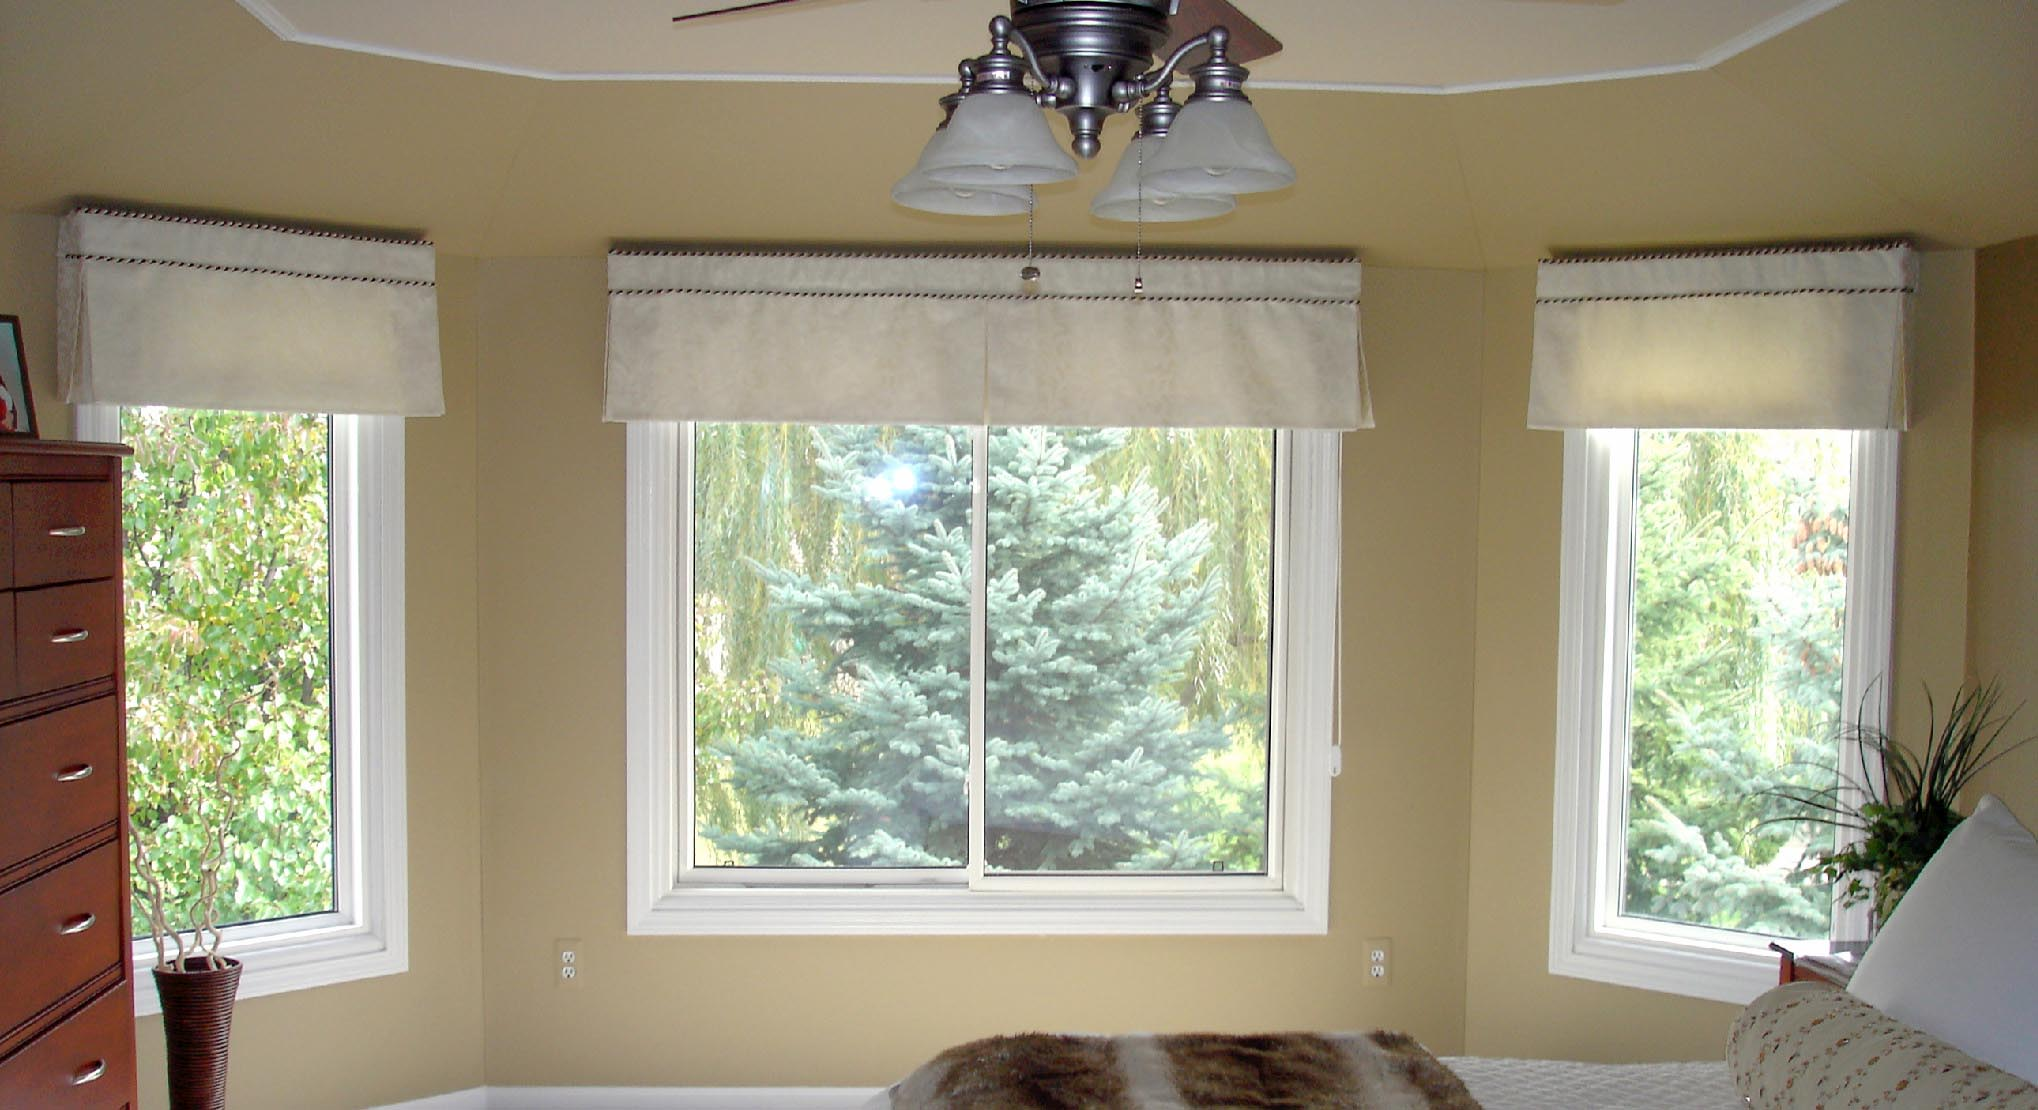 inspired by custom window valances custom window valances patterns